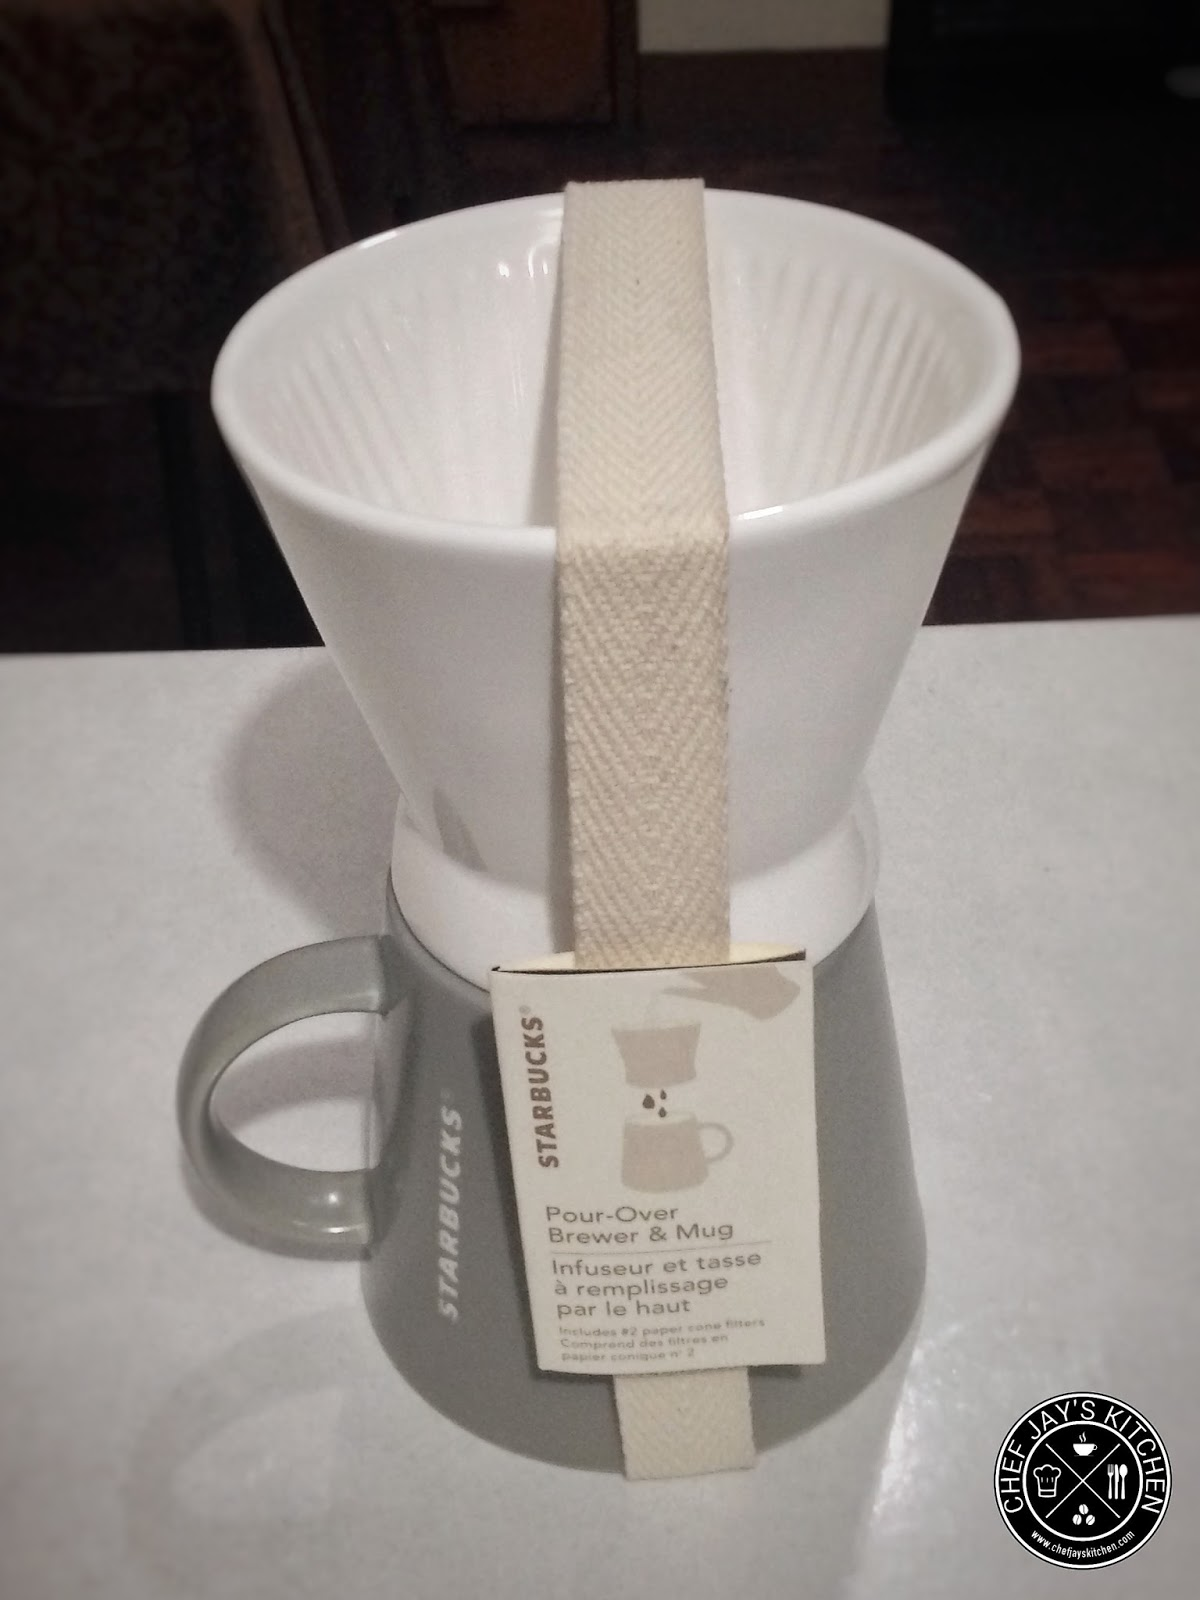 Starbucks Special Coffee Maker : Specialty Coffee Gear: The Starbucks Melitta Pour-Over Brewer Chef Jay s Kitchen